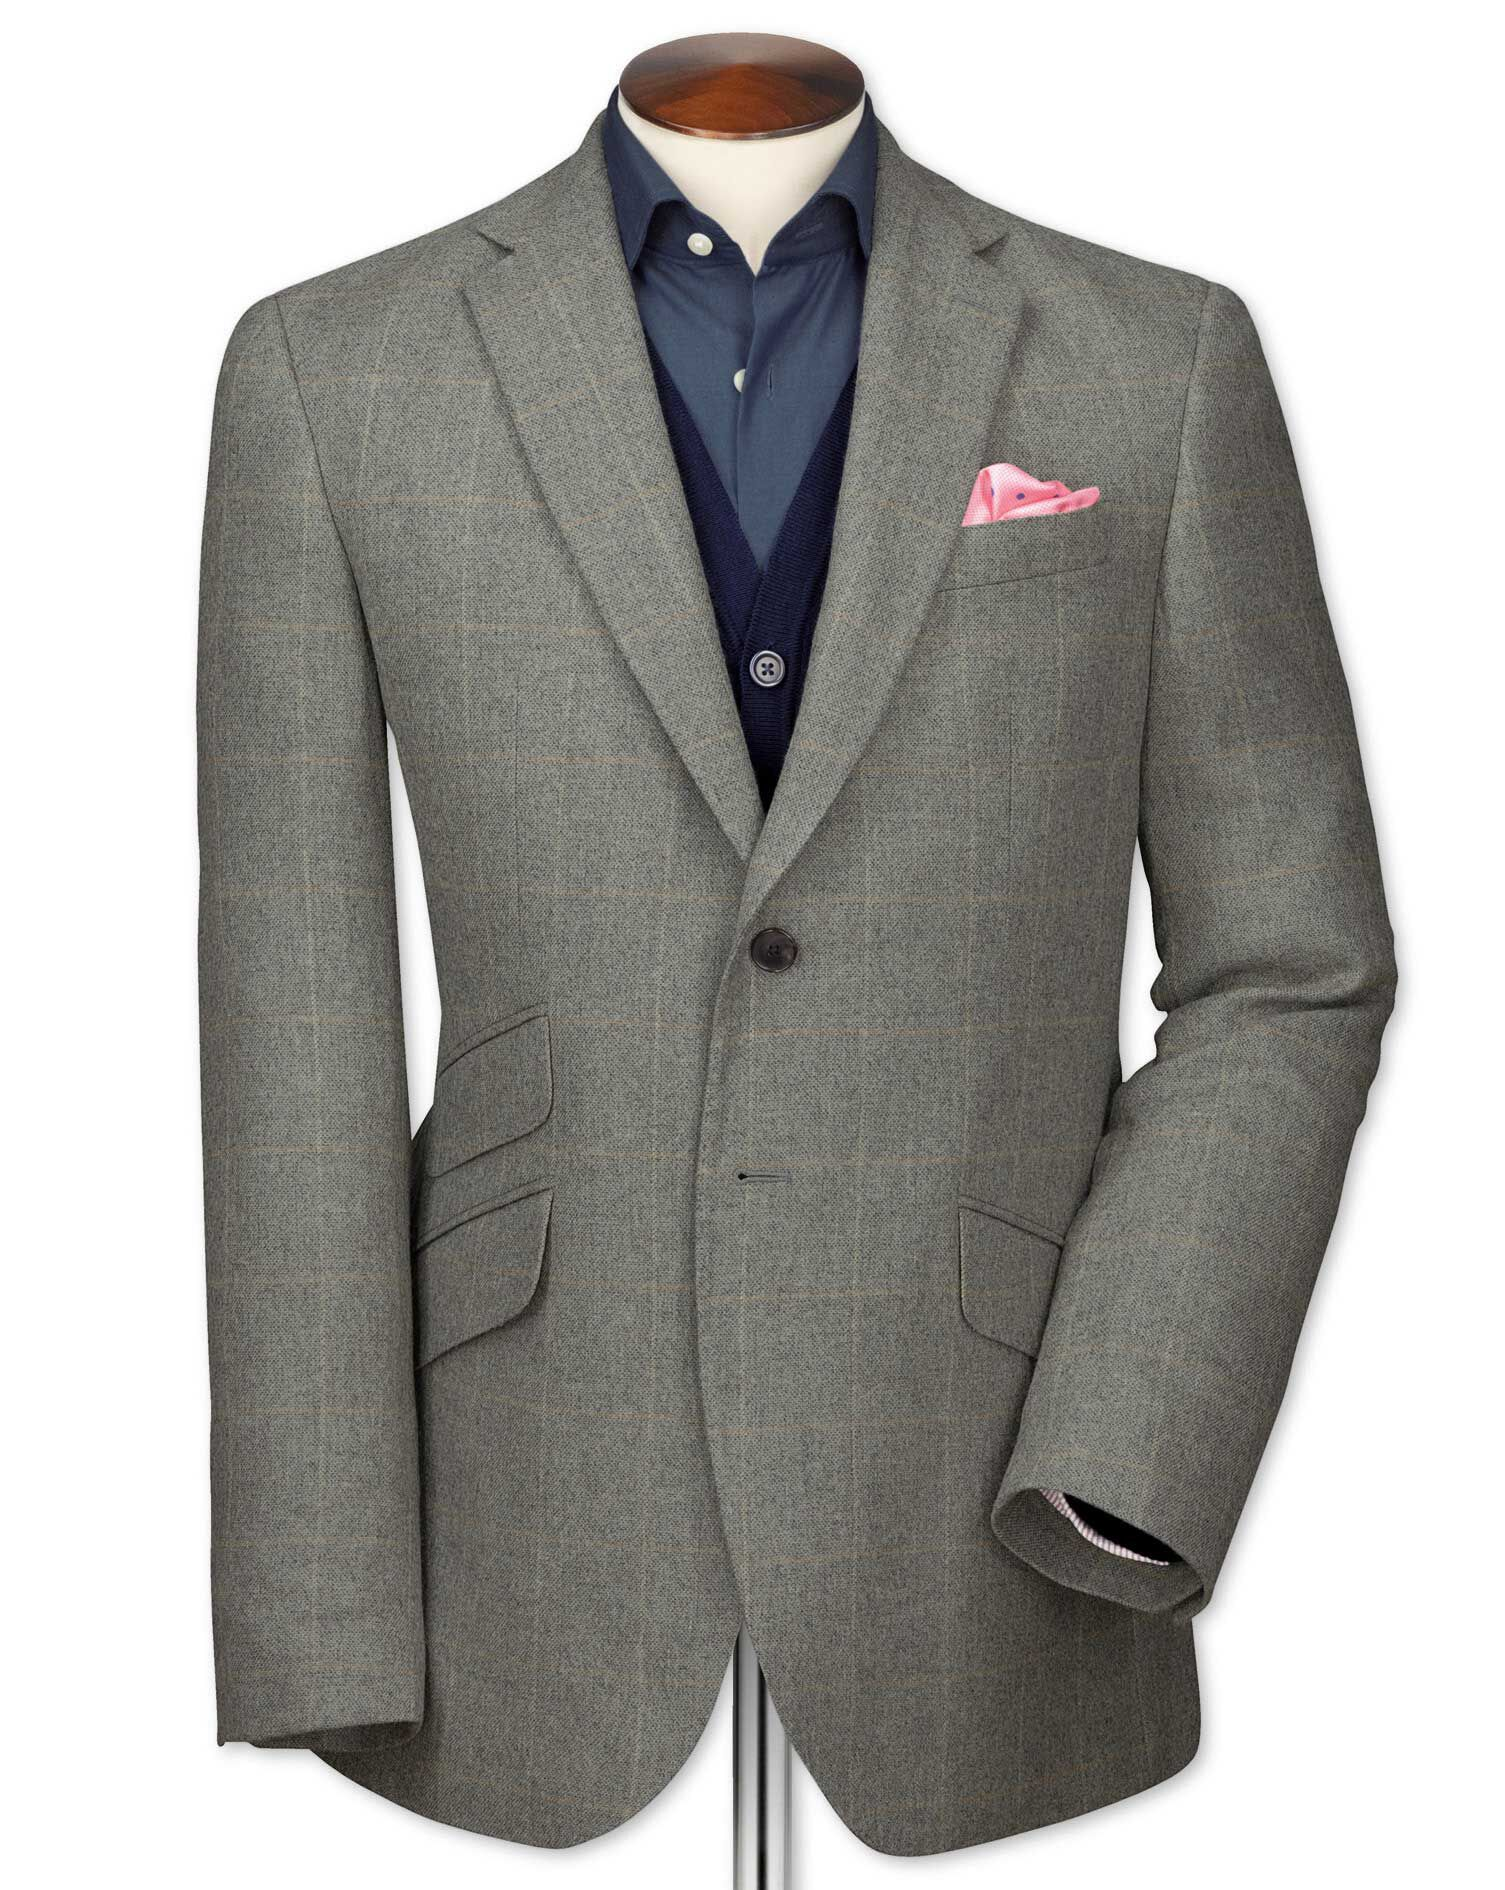 Slim Fit Grey Checkered Luxury Border Tweed Wool Jacket Size 40 Long by Charles Tyrwhitt